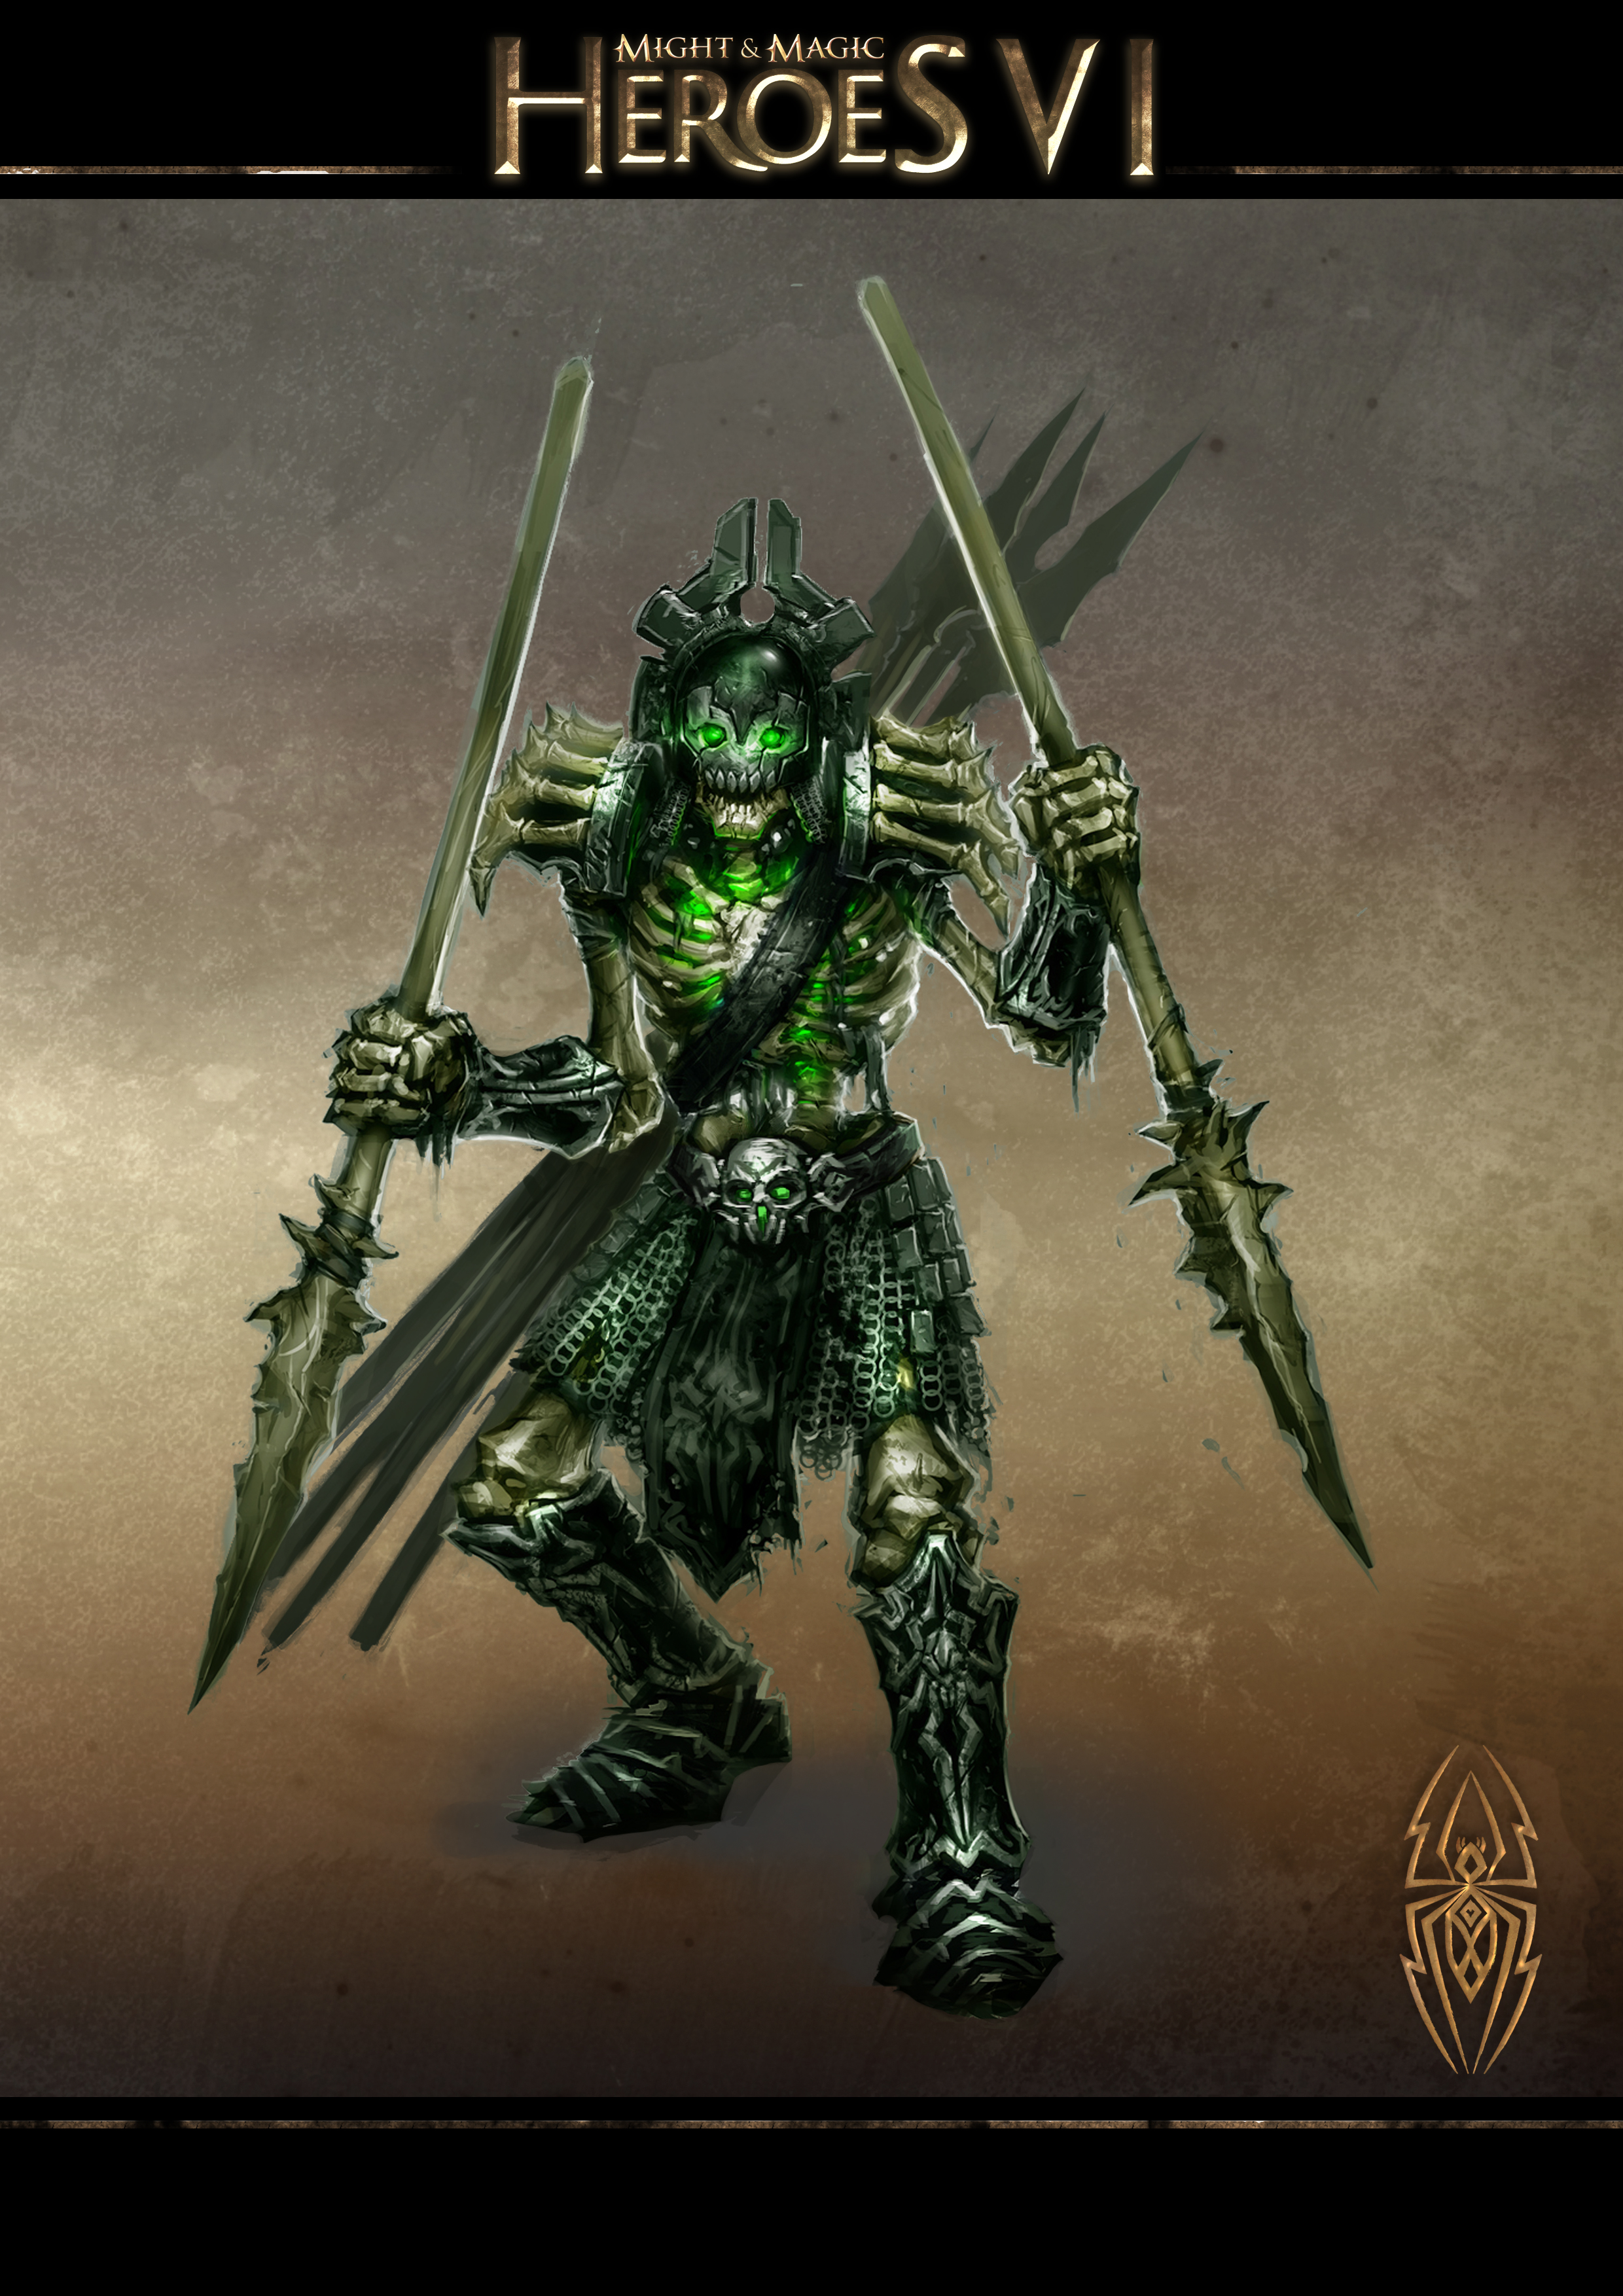 Might and Magic Heroes-6 25.jpg - Might and Magic: Heroes 6